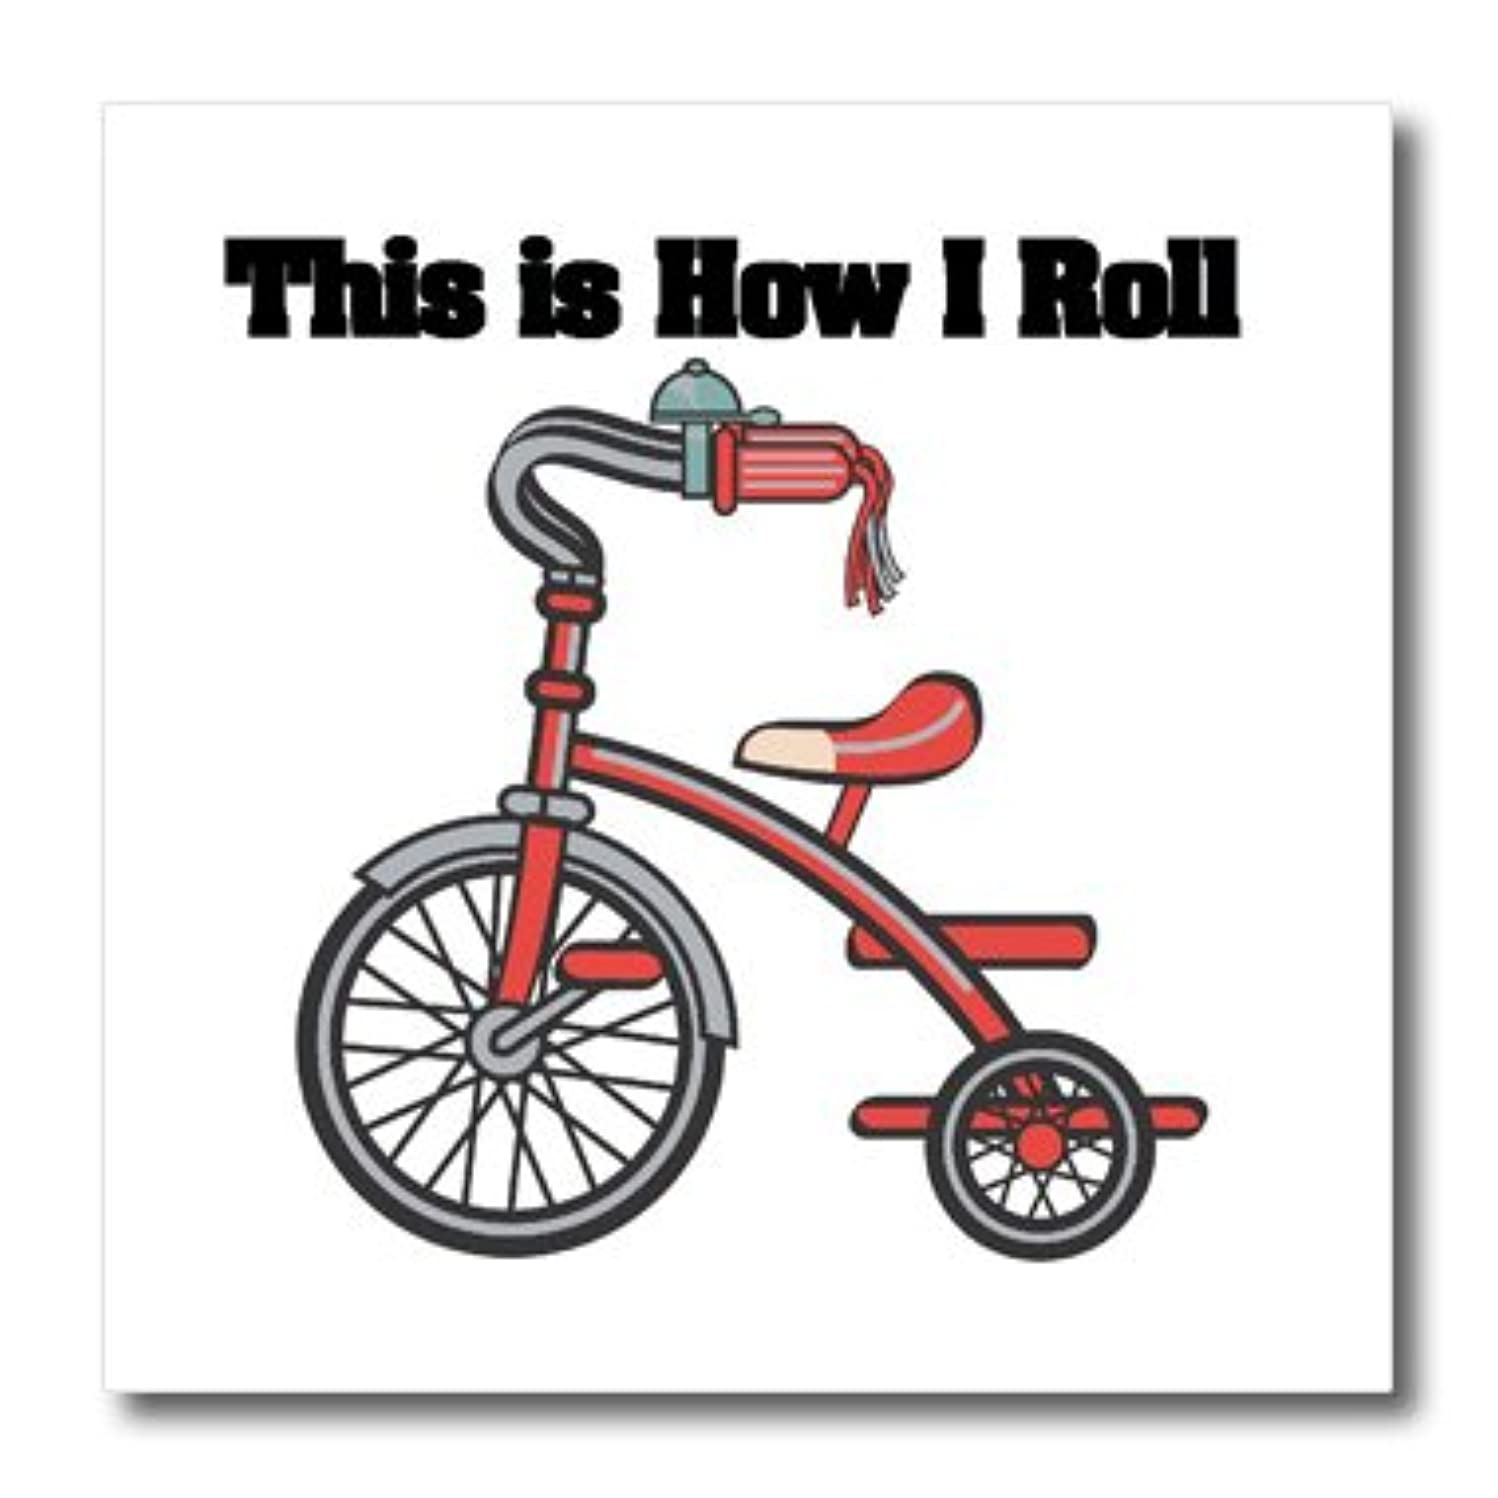 3dRose ht_102625_2 This is How I Roll Trike Tricycle Design Iron on Heat Transfer, 6 by 6